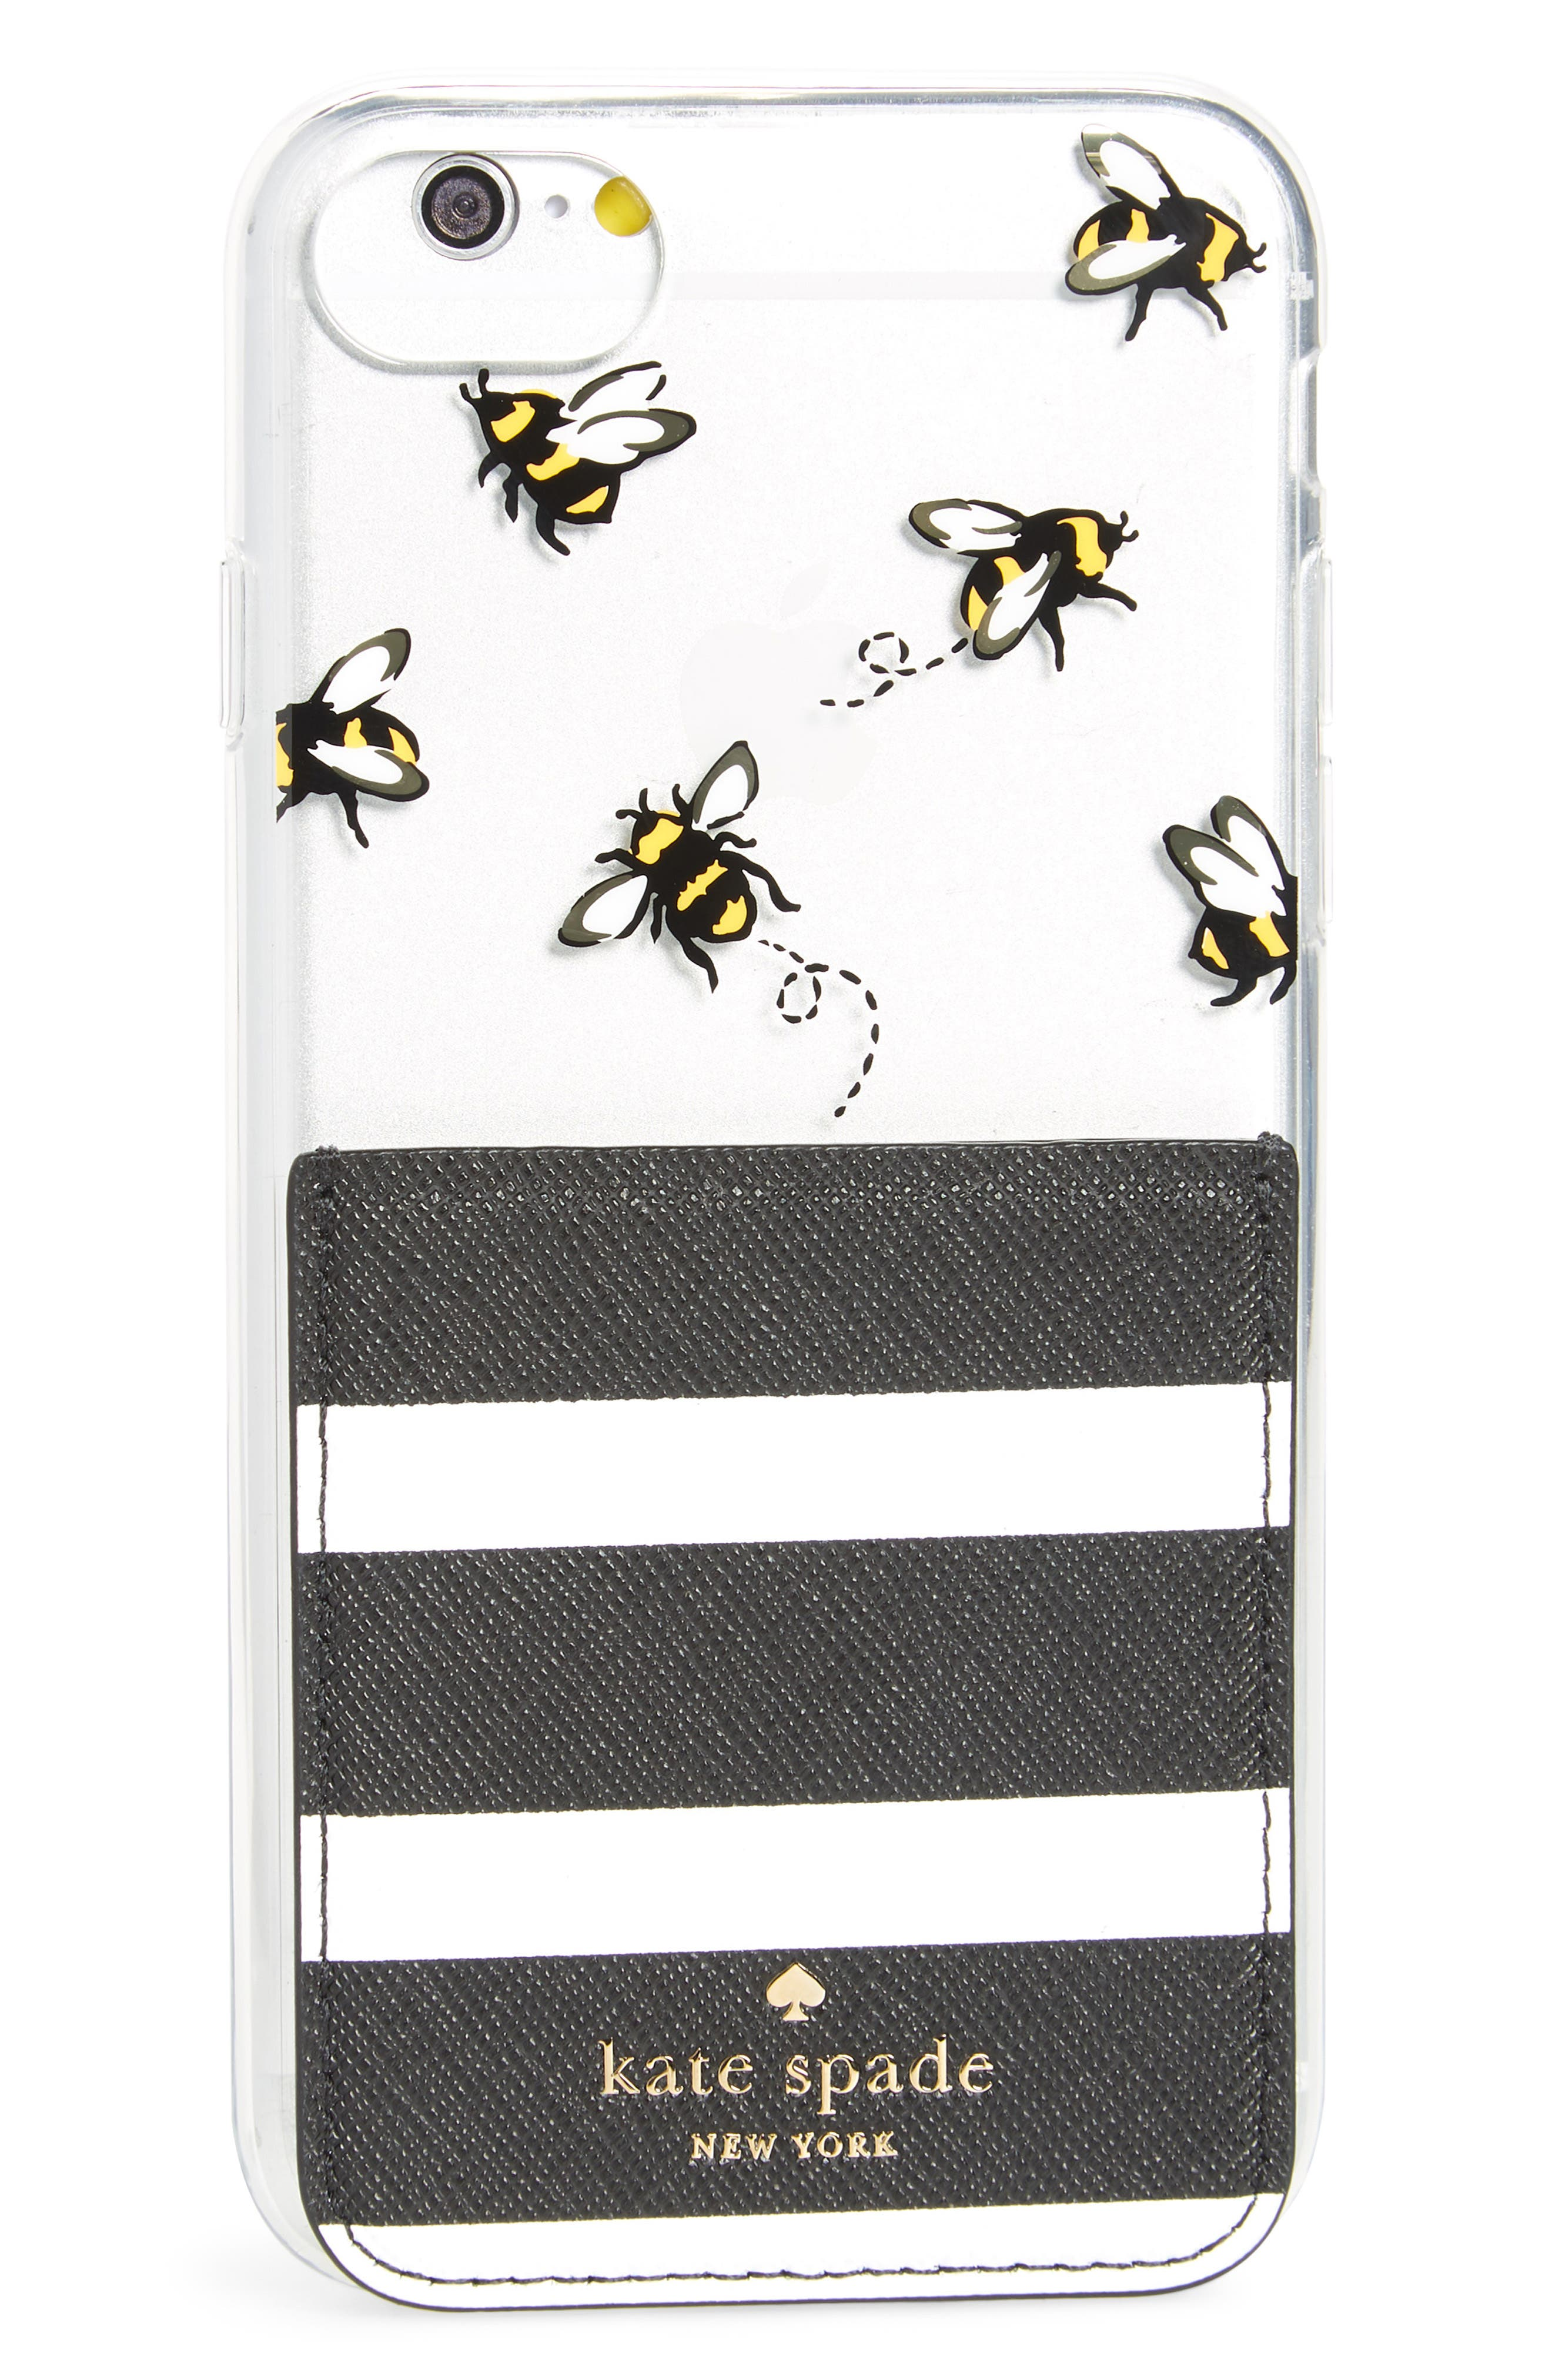 kate spade new york stick to it iPhone 7/8 & iPhone 7/8 Plus case & sticker pocket set